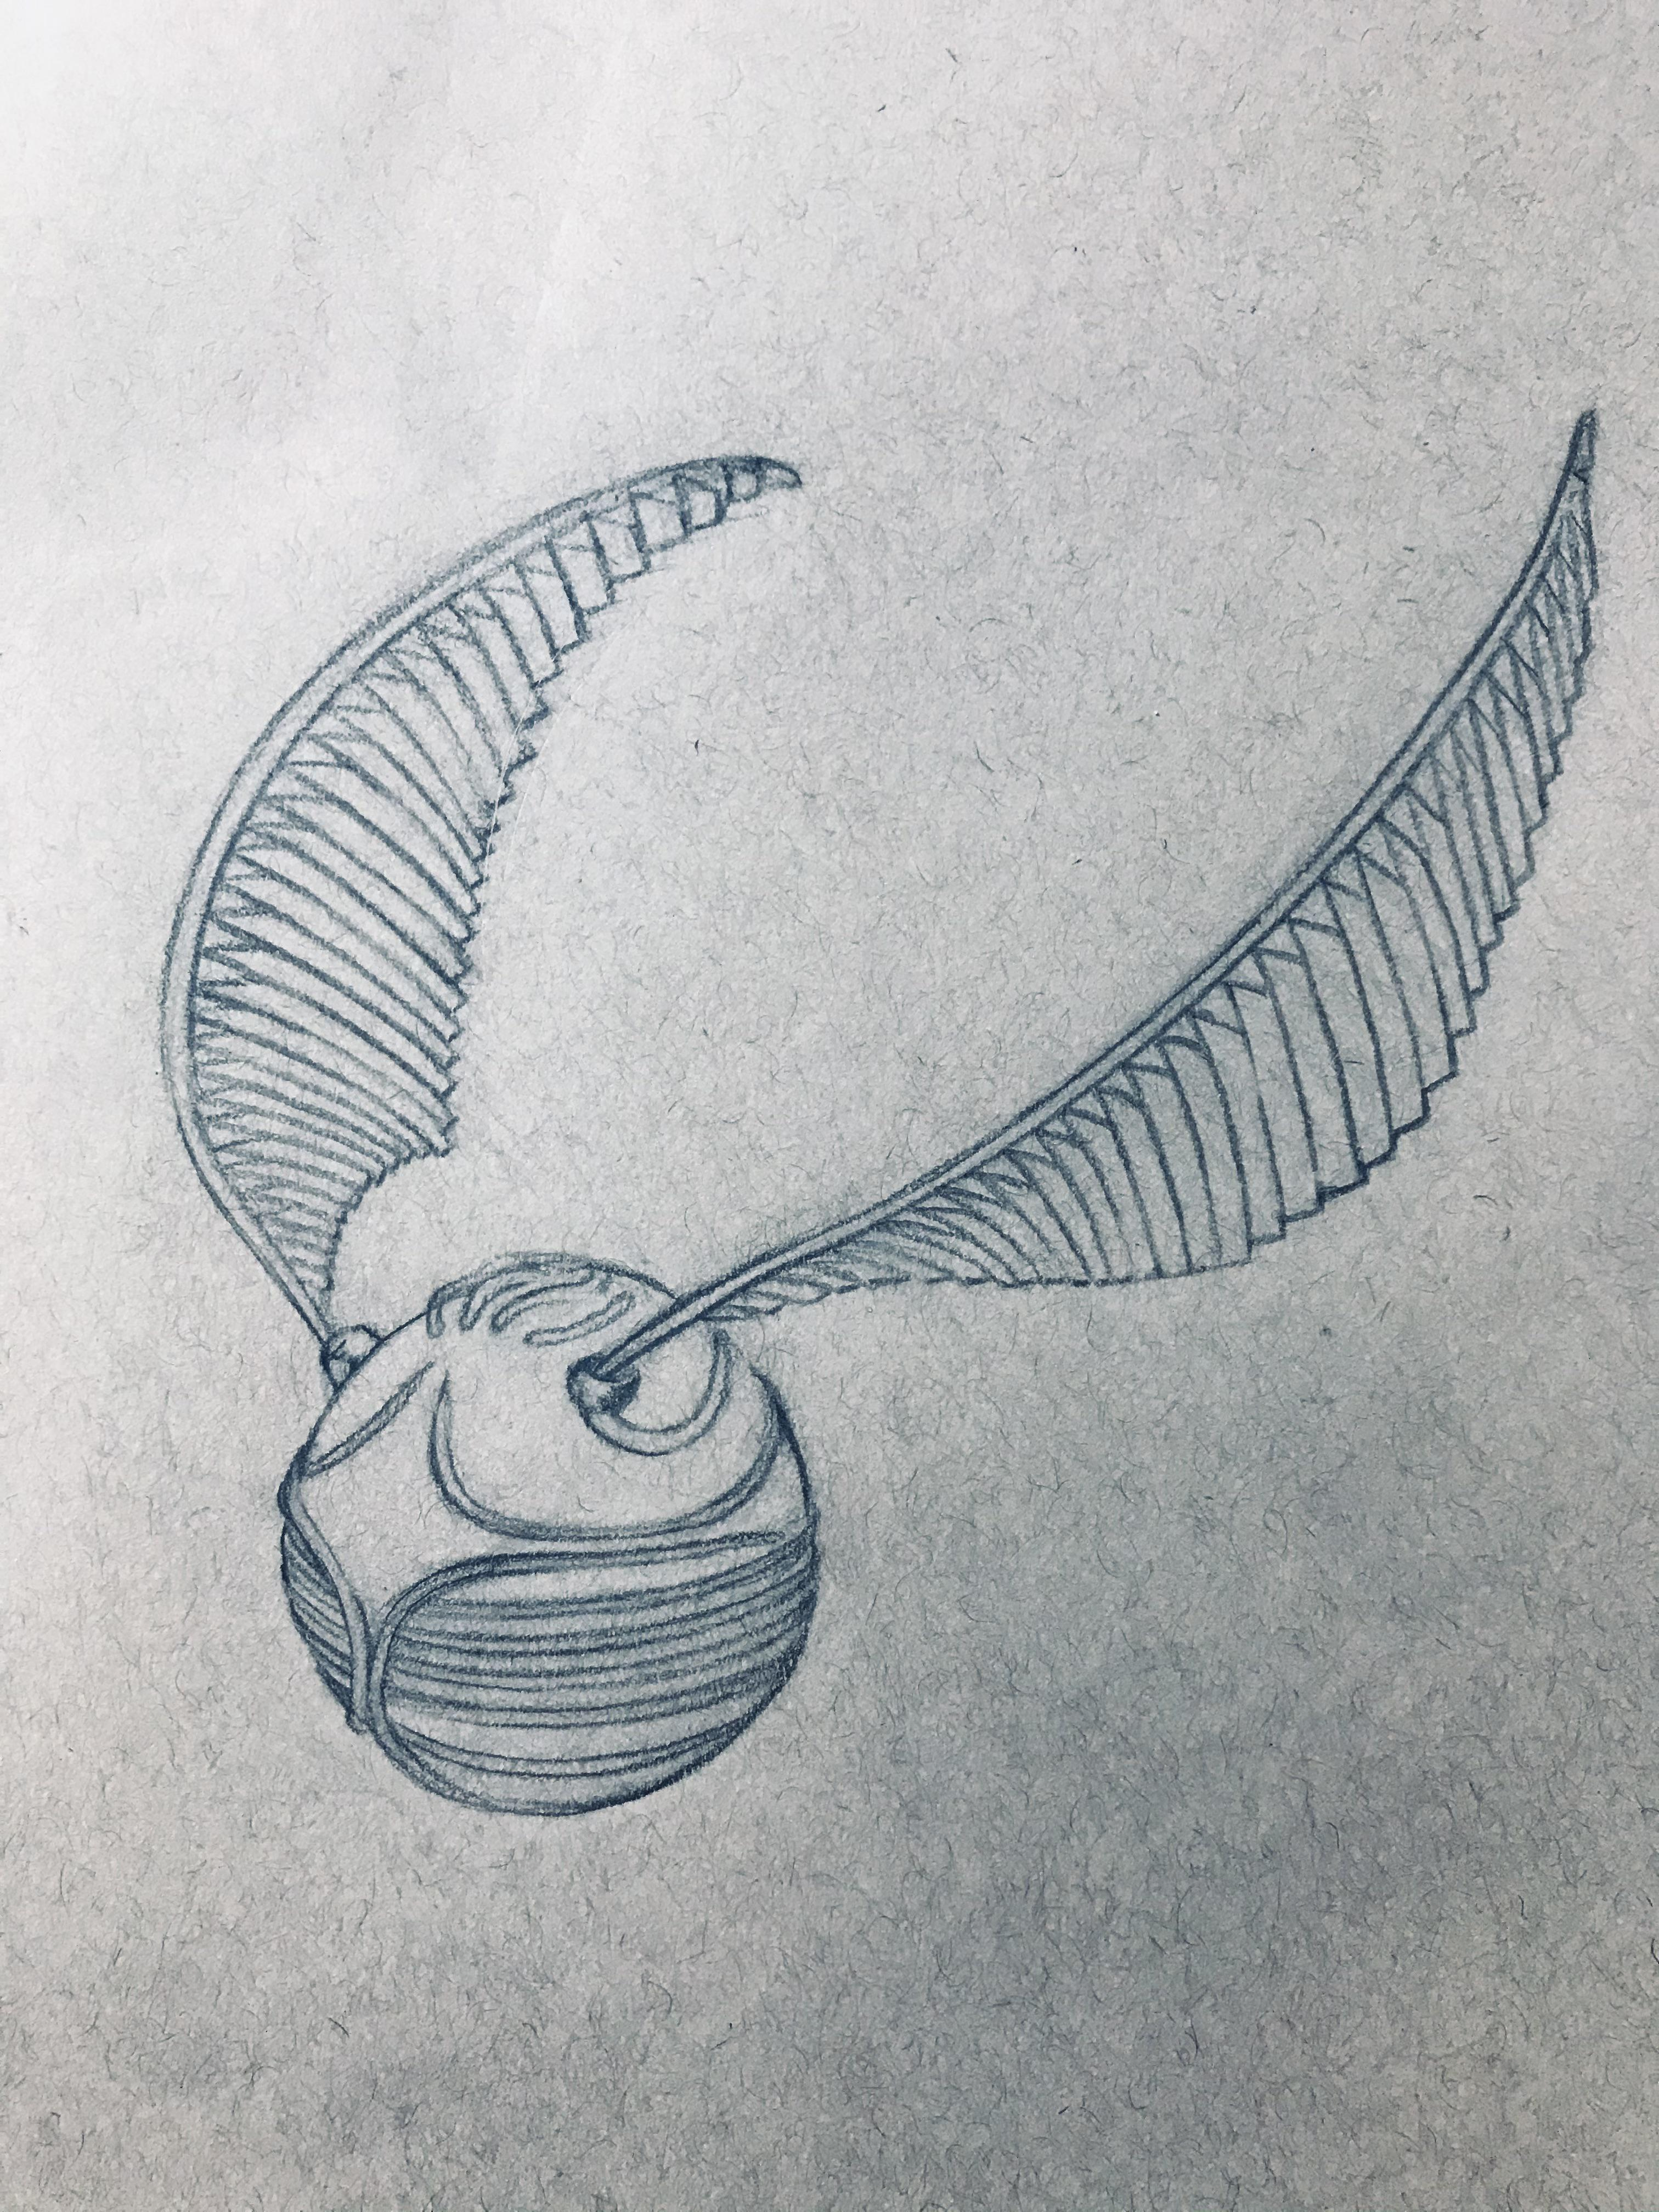 Harry Potter Snitch Drawing : harry, potter, snitch, drawing, Outline, Sketch, Golden, Snitch!, Coloring, Soon,, Enjoy, Update, Done., Harrypotter